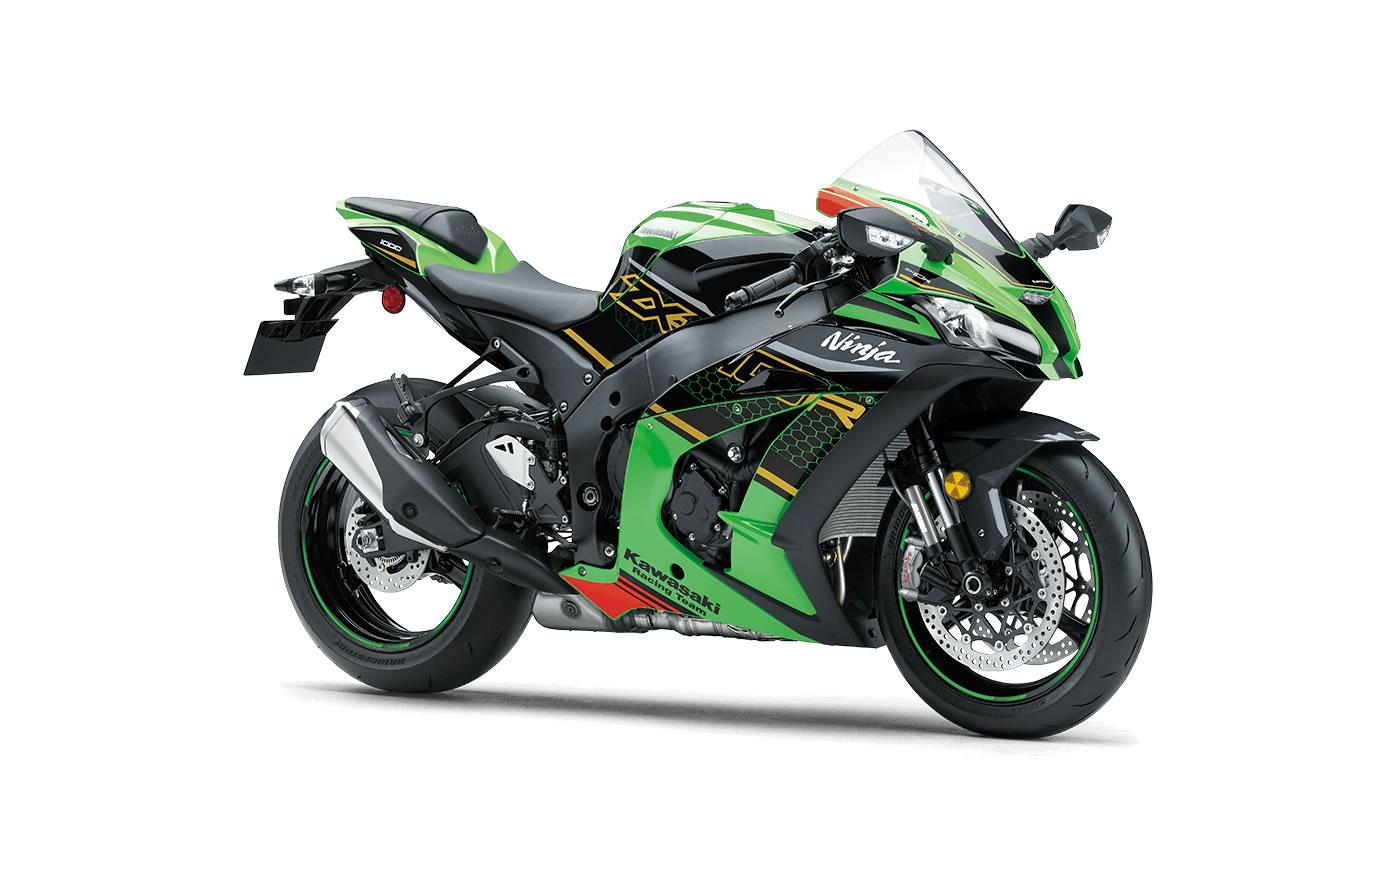 supersports-kawasaki-ninja-zx-10r-abs-krt-edition